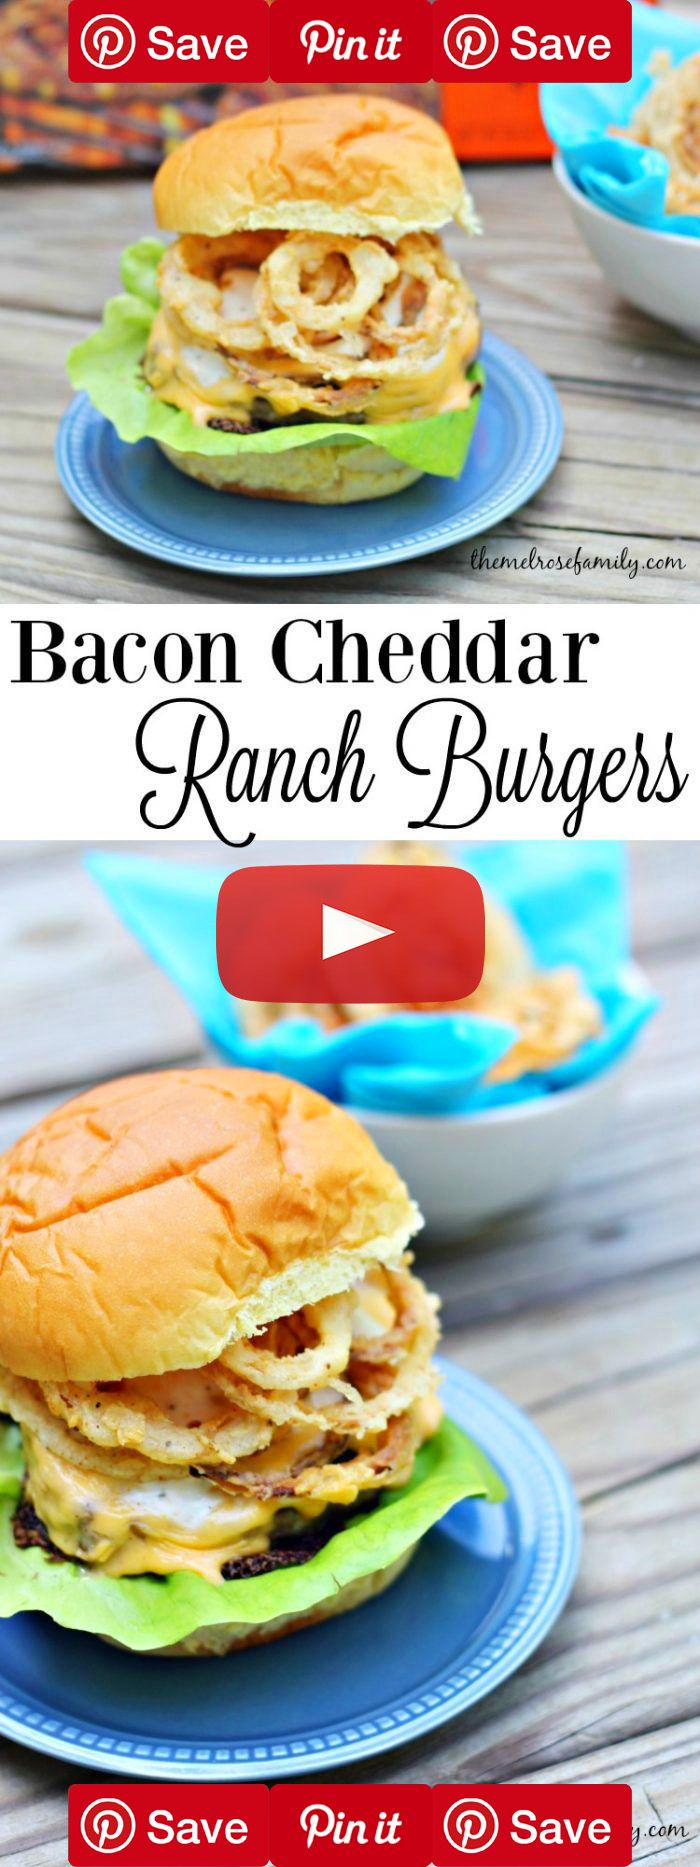 Need the perfect burger for your next barbecue? These Bacon Cheddar Ranch Burgers with Onion Strings are just what a crowd ordered.: Burgerz